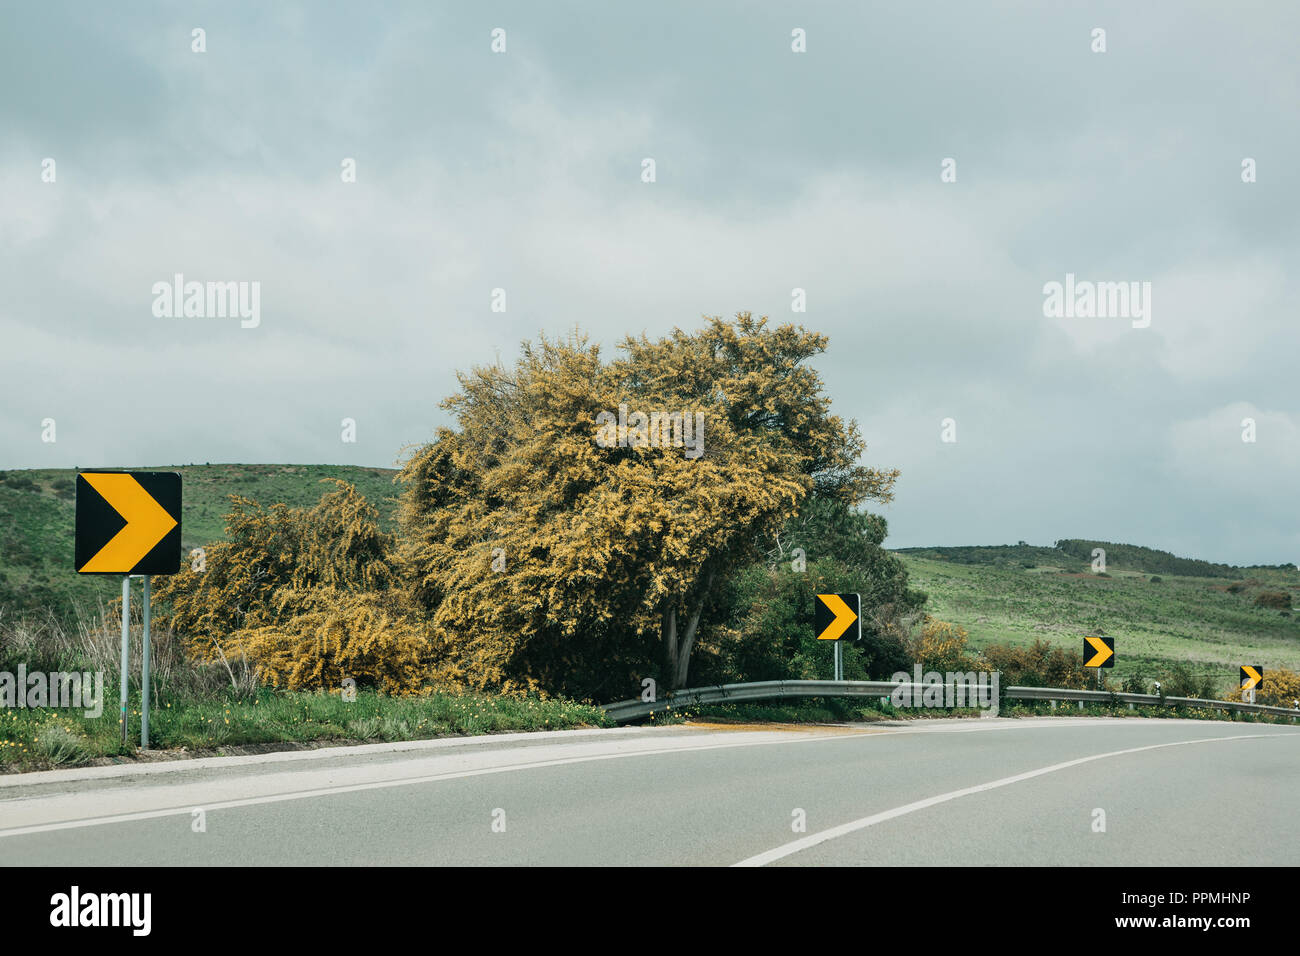 Reflective direction indicators on the road. Warning for drivers. - Stock Image